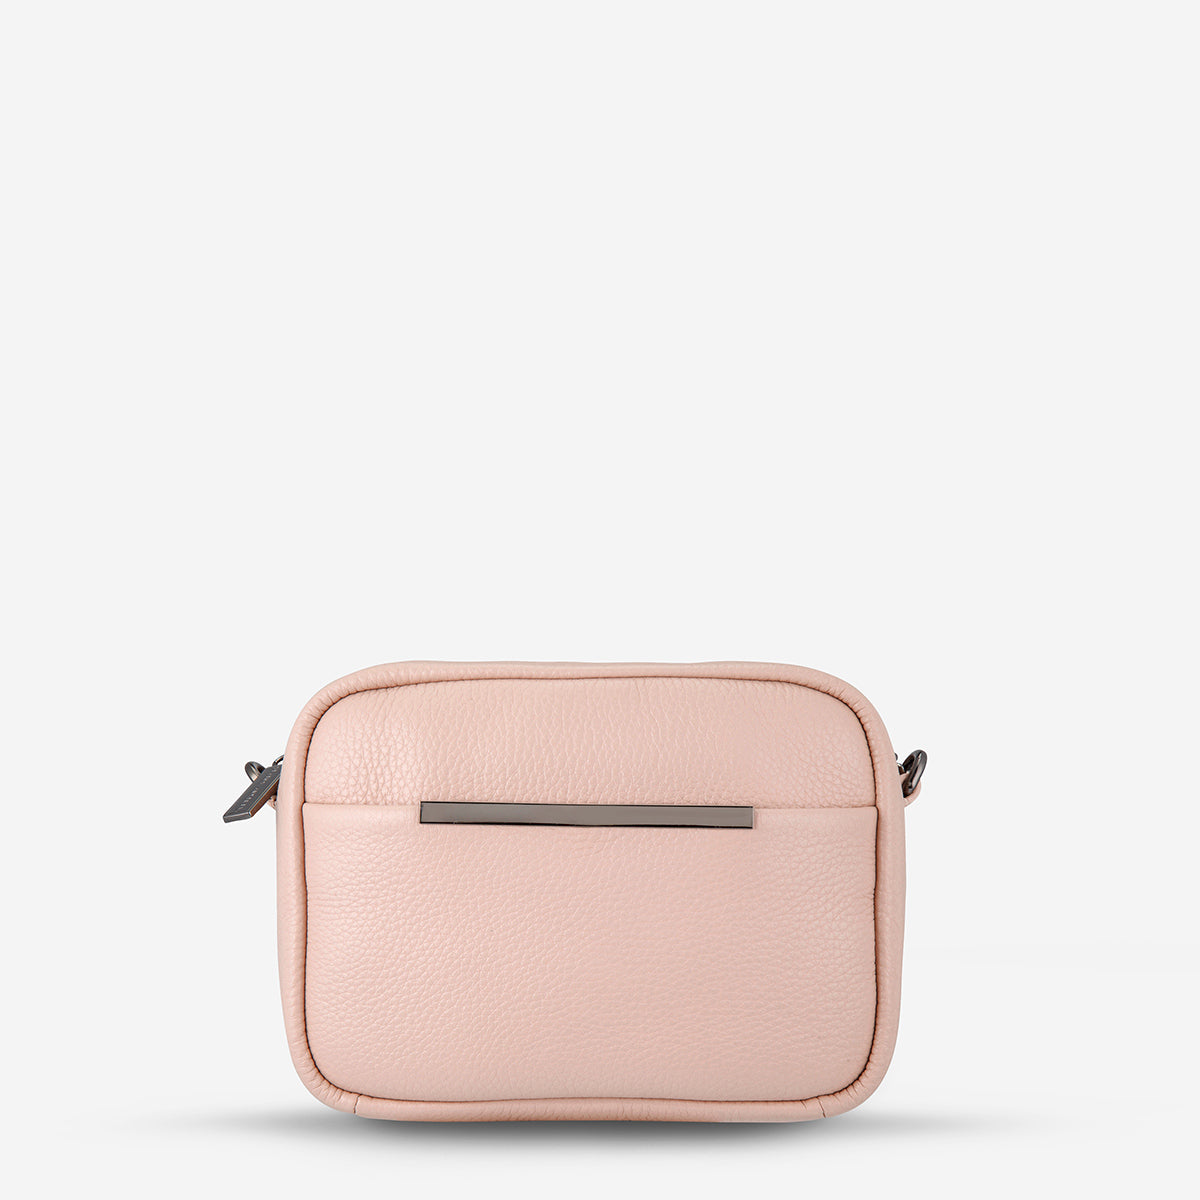 Status Anxiety Cult Crossbody Bag - Pink